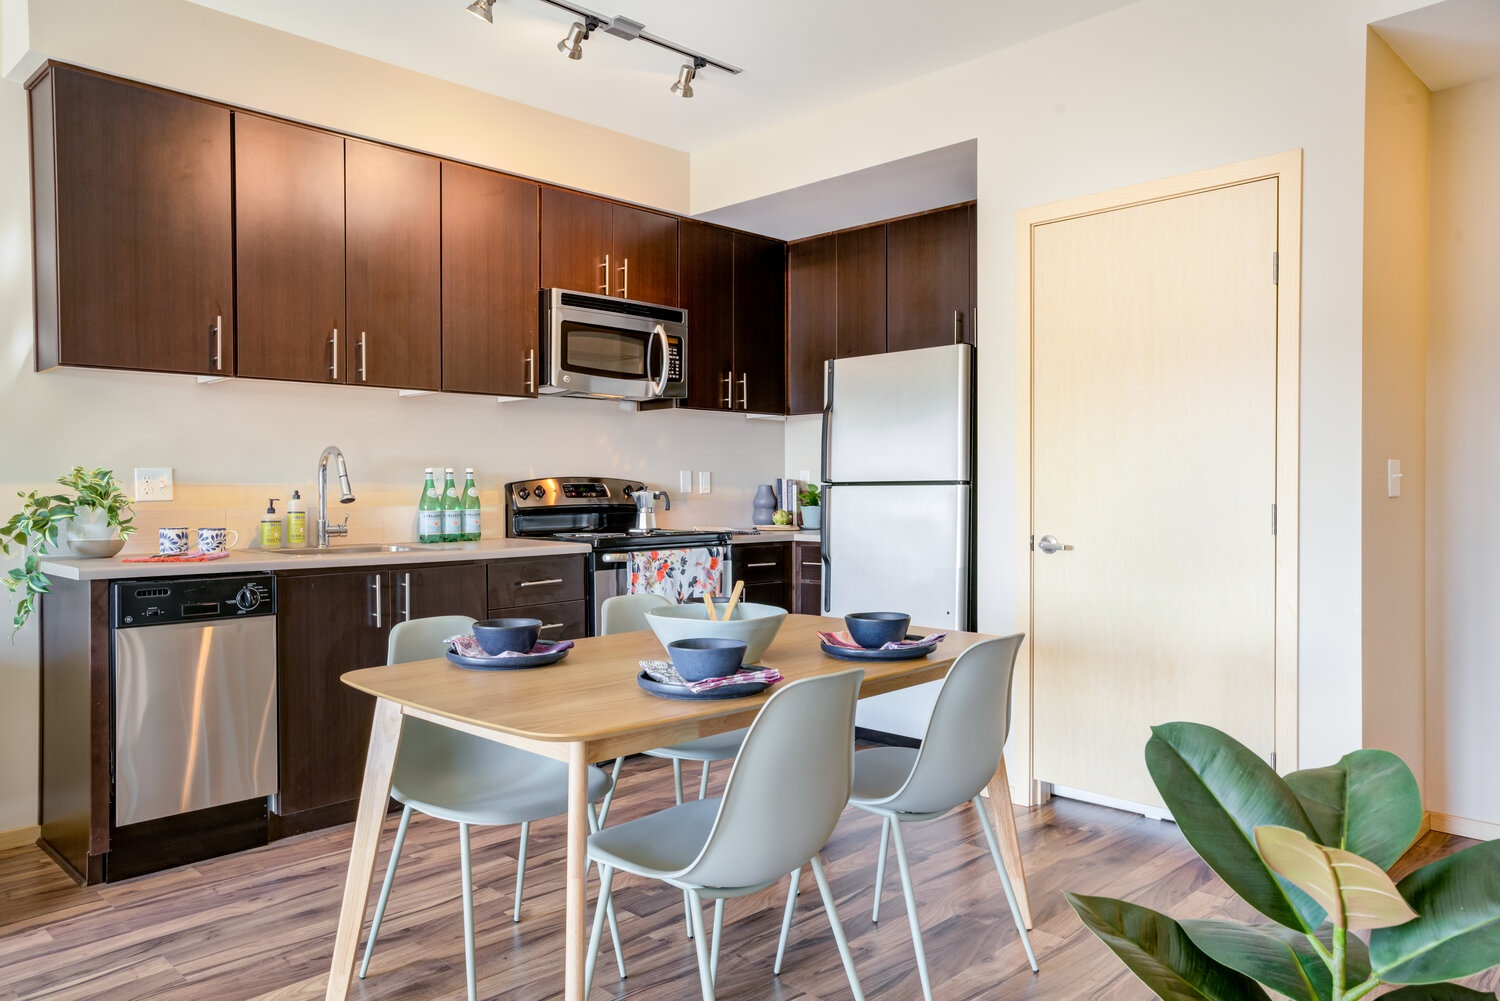 interior of apartment kitchen with table